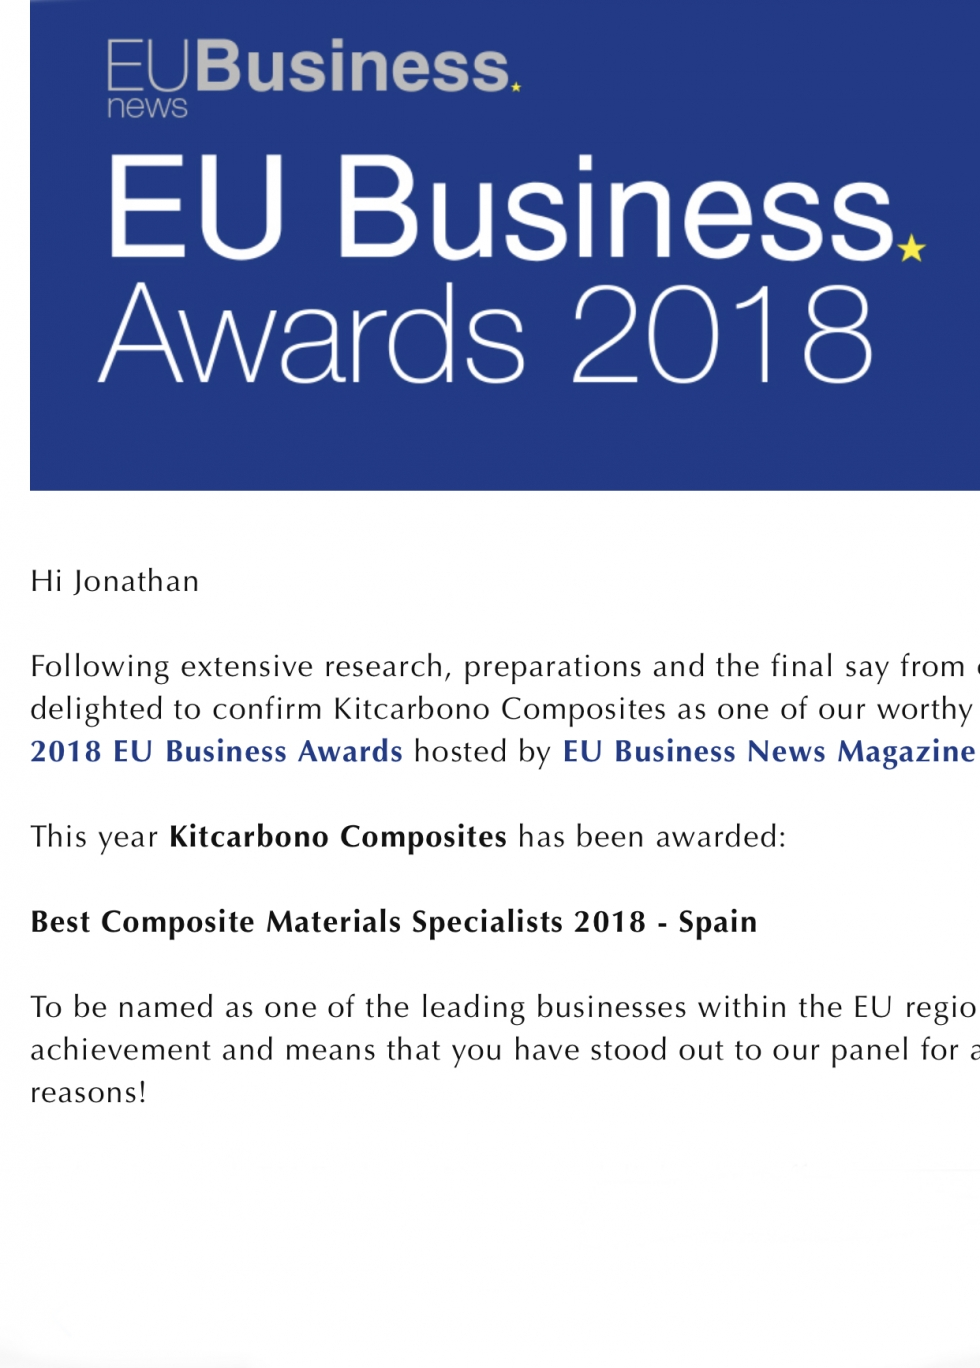 Premio Eu bussines News